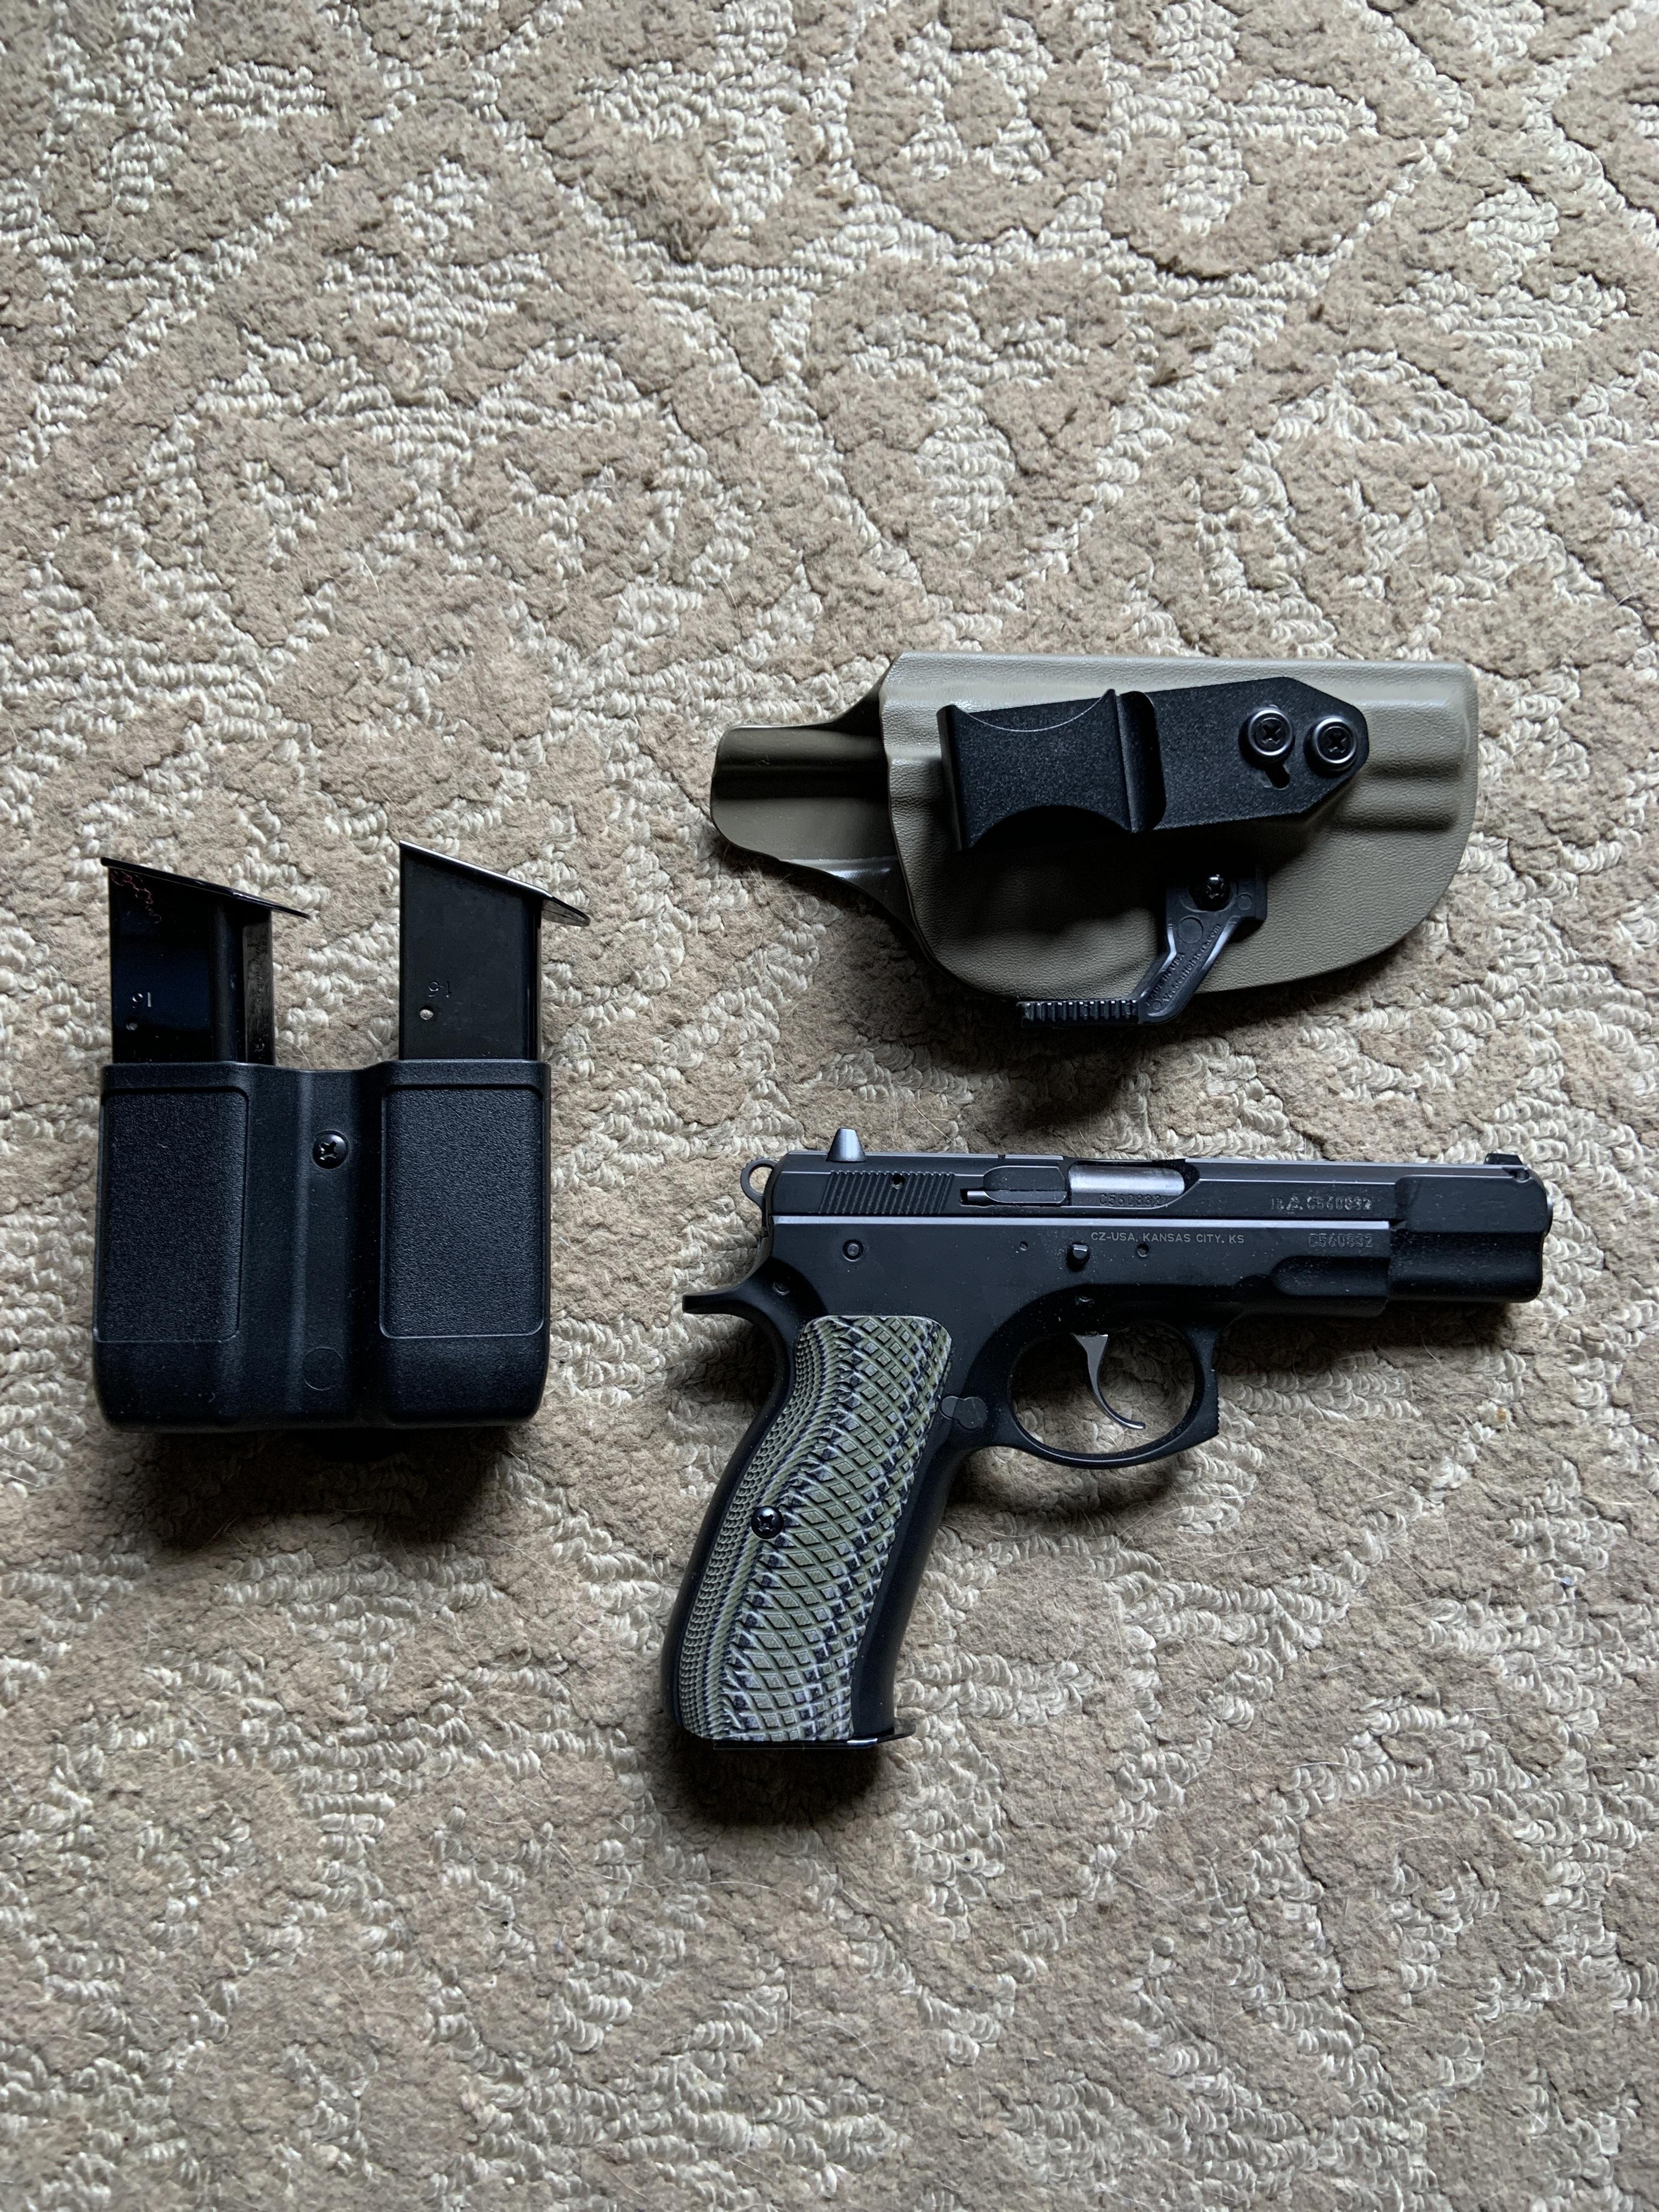 What Are You Carrying Today?-image_1587147273643.jpg